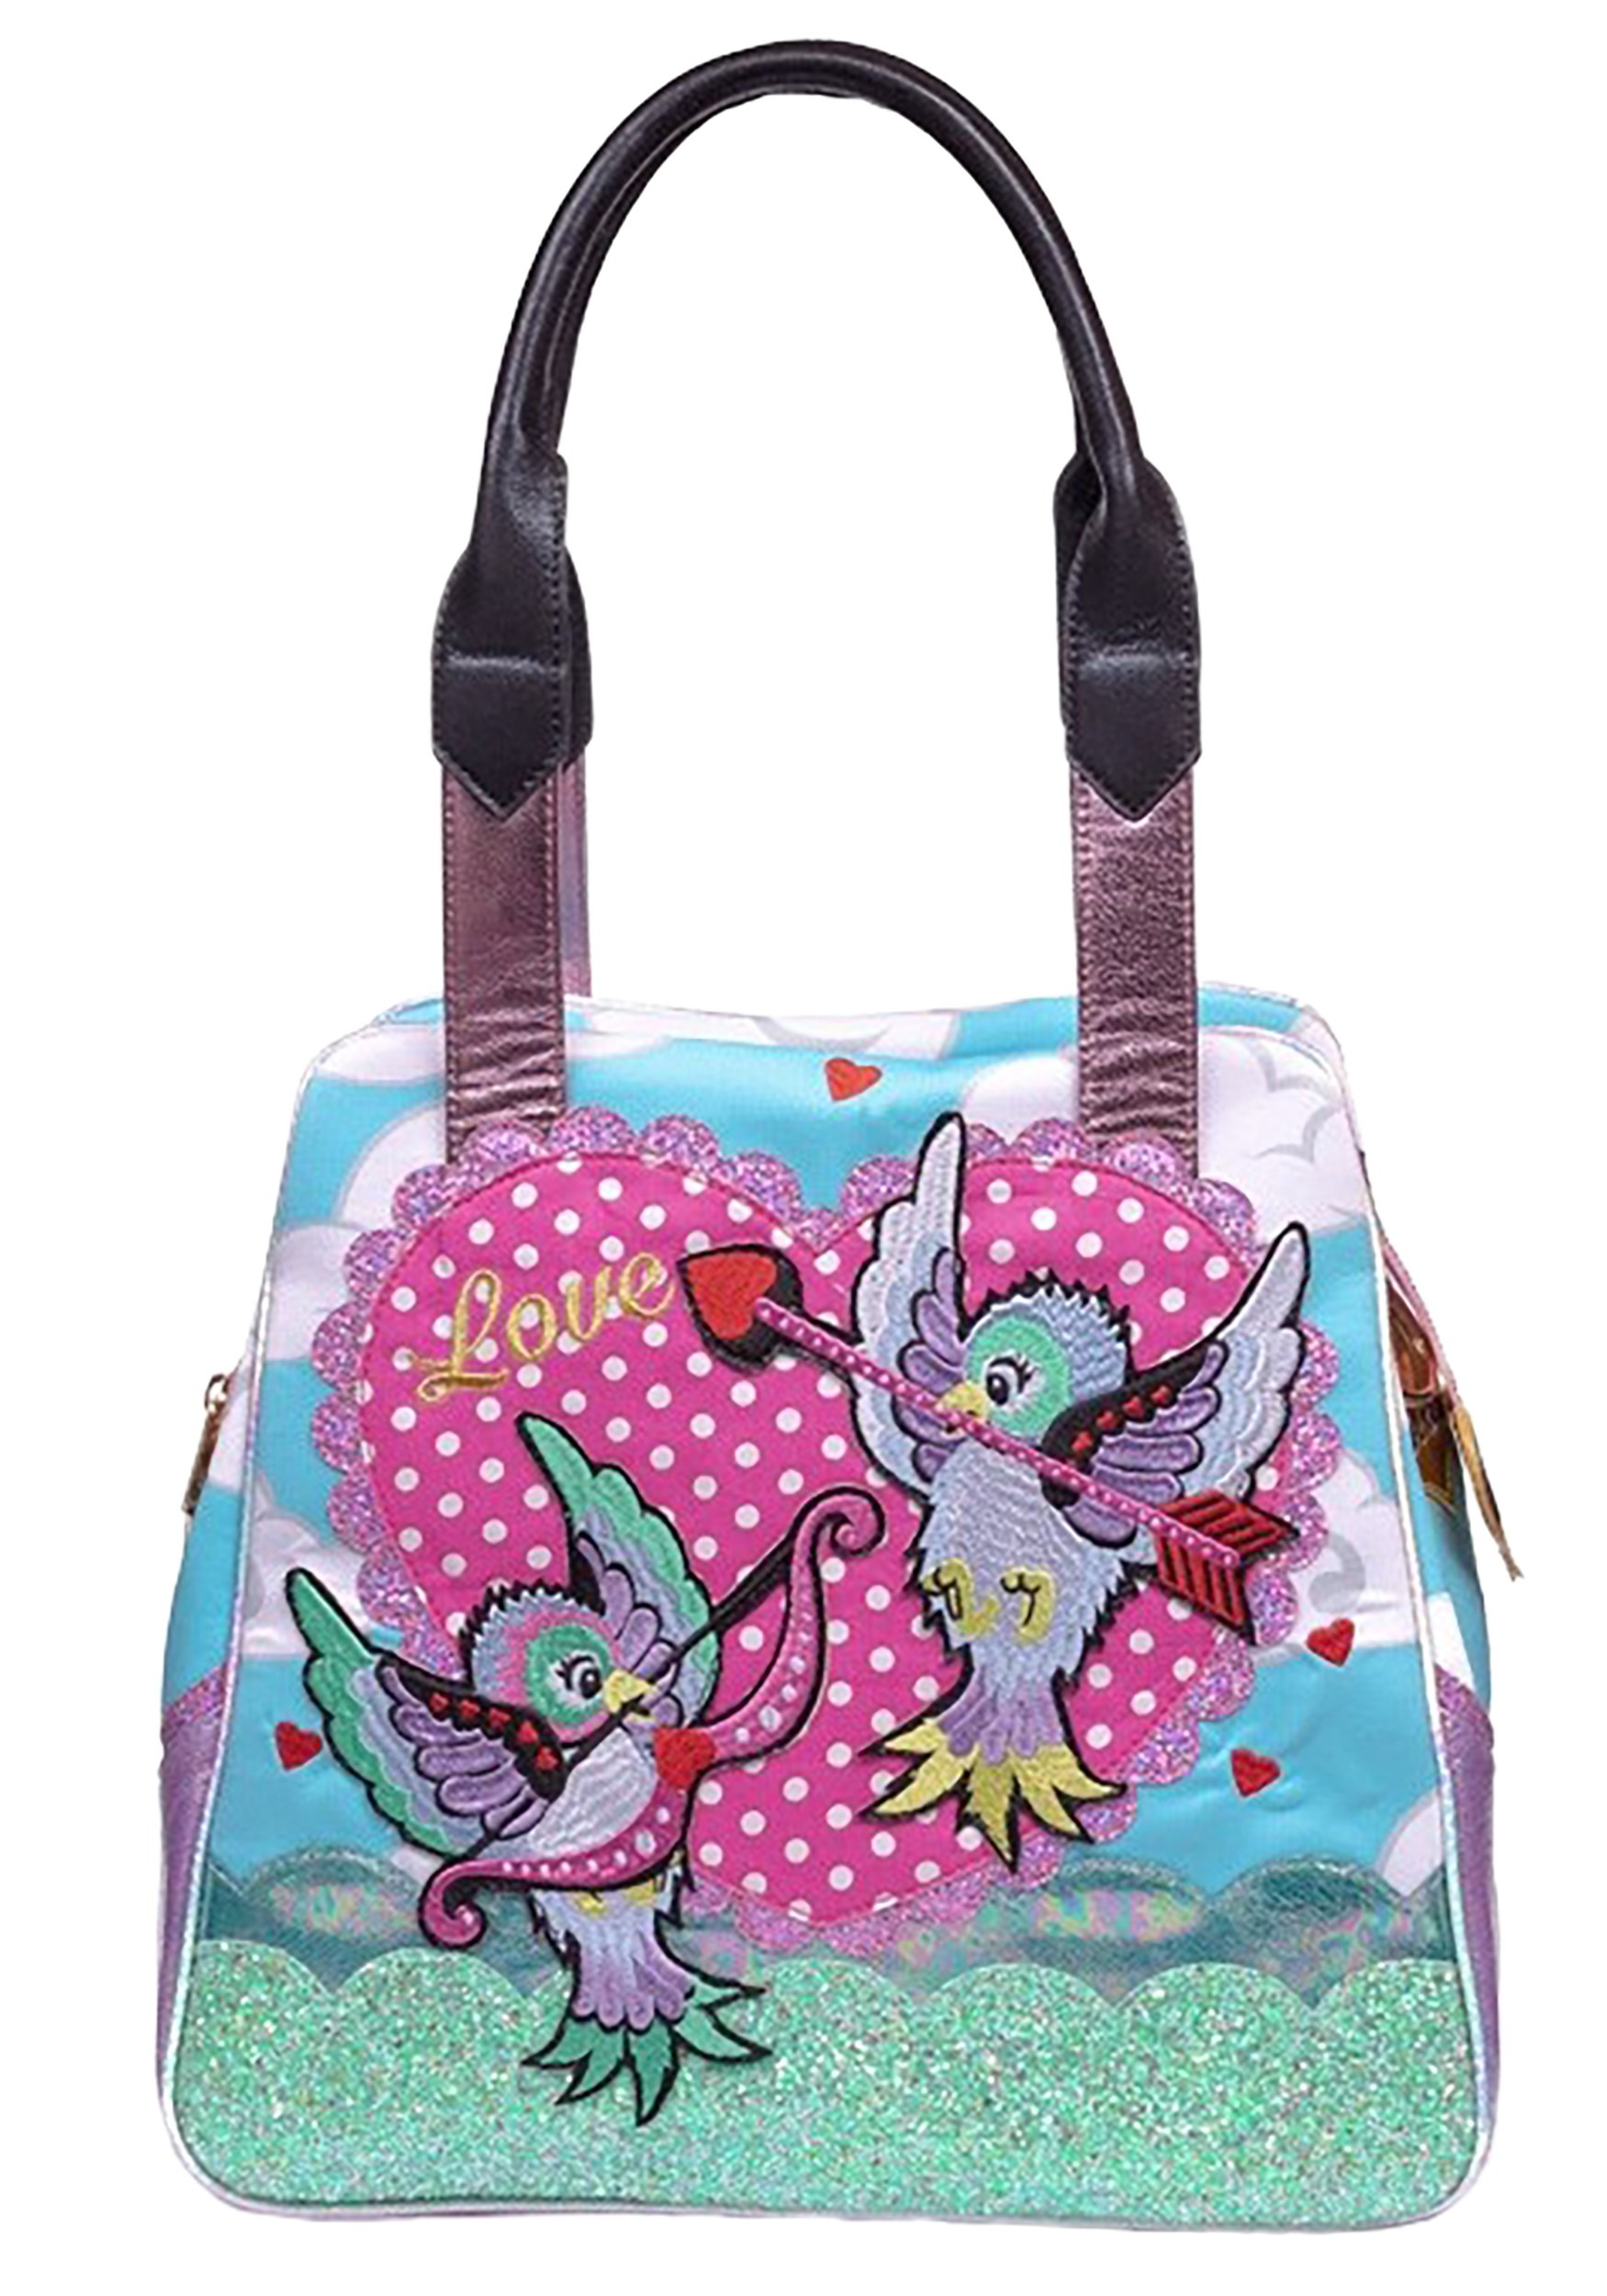 Irregular Choice Cupid Bird Blue Handbag Purse